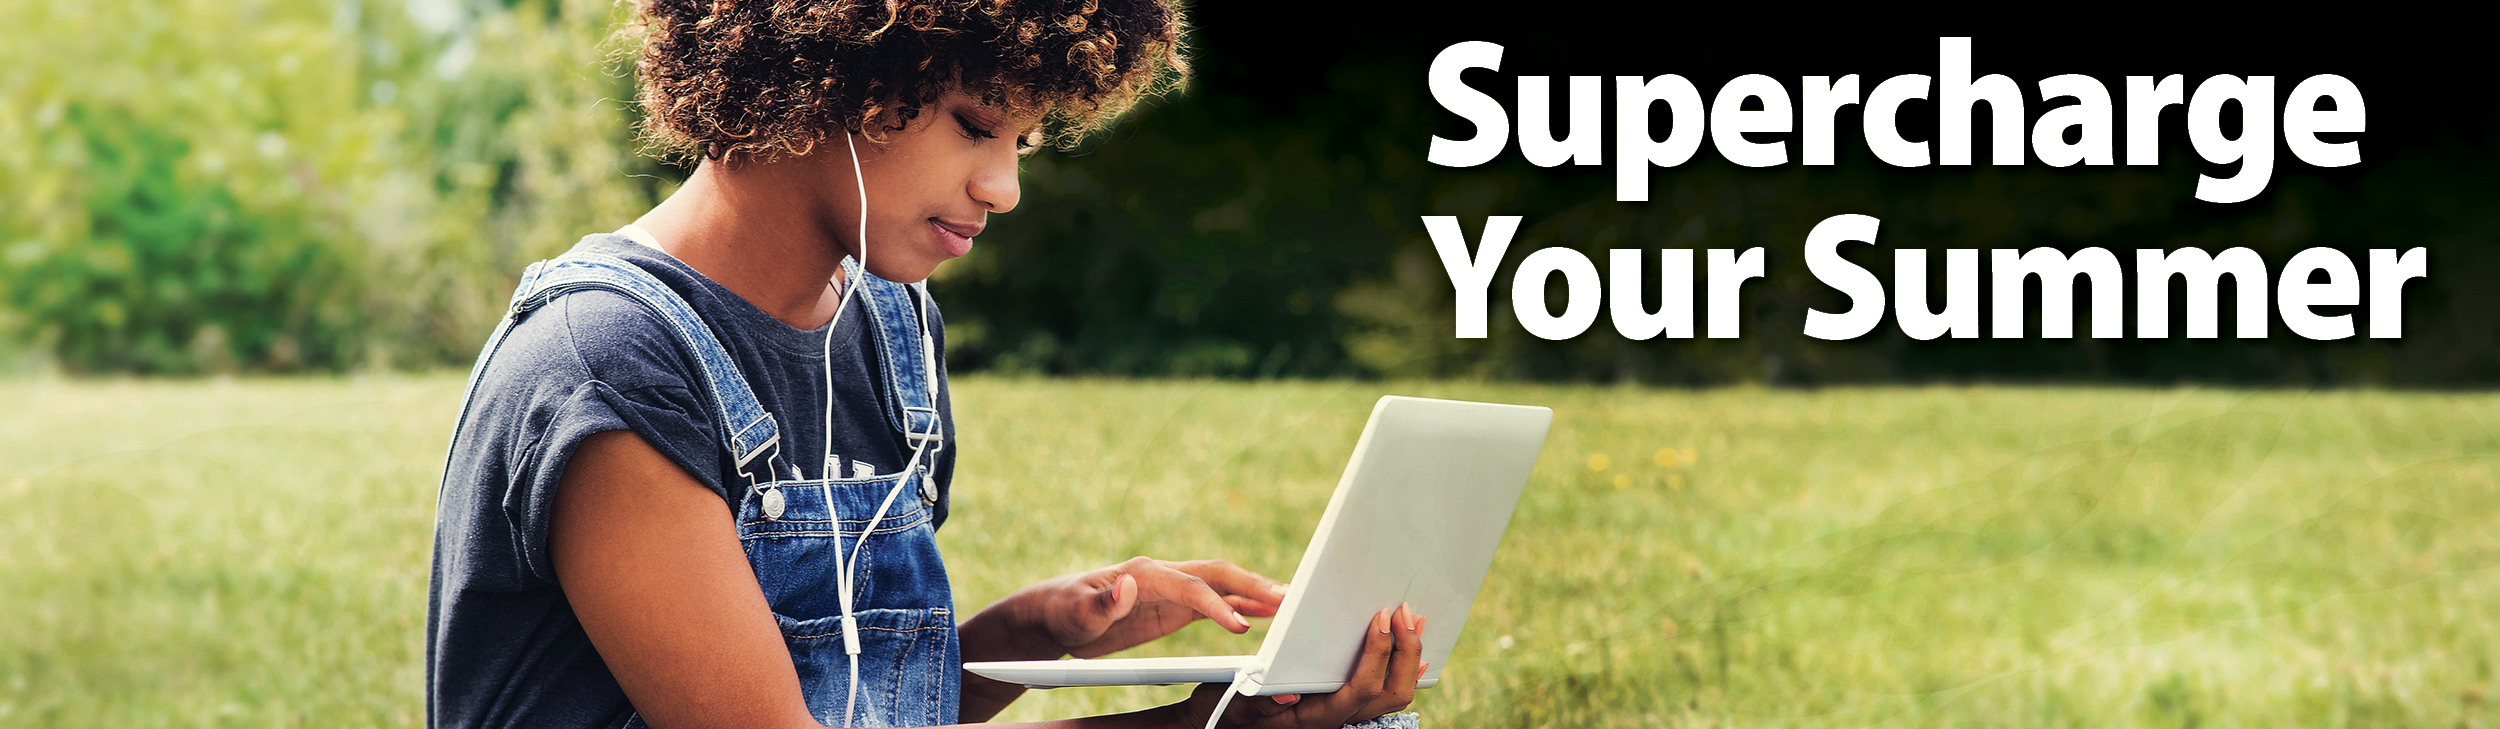 Supercharge Your Summer. Black female student working on laptop outside on the grass on a sunny day.